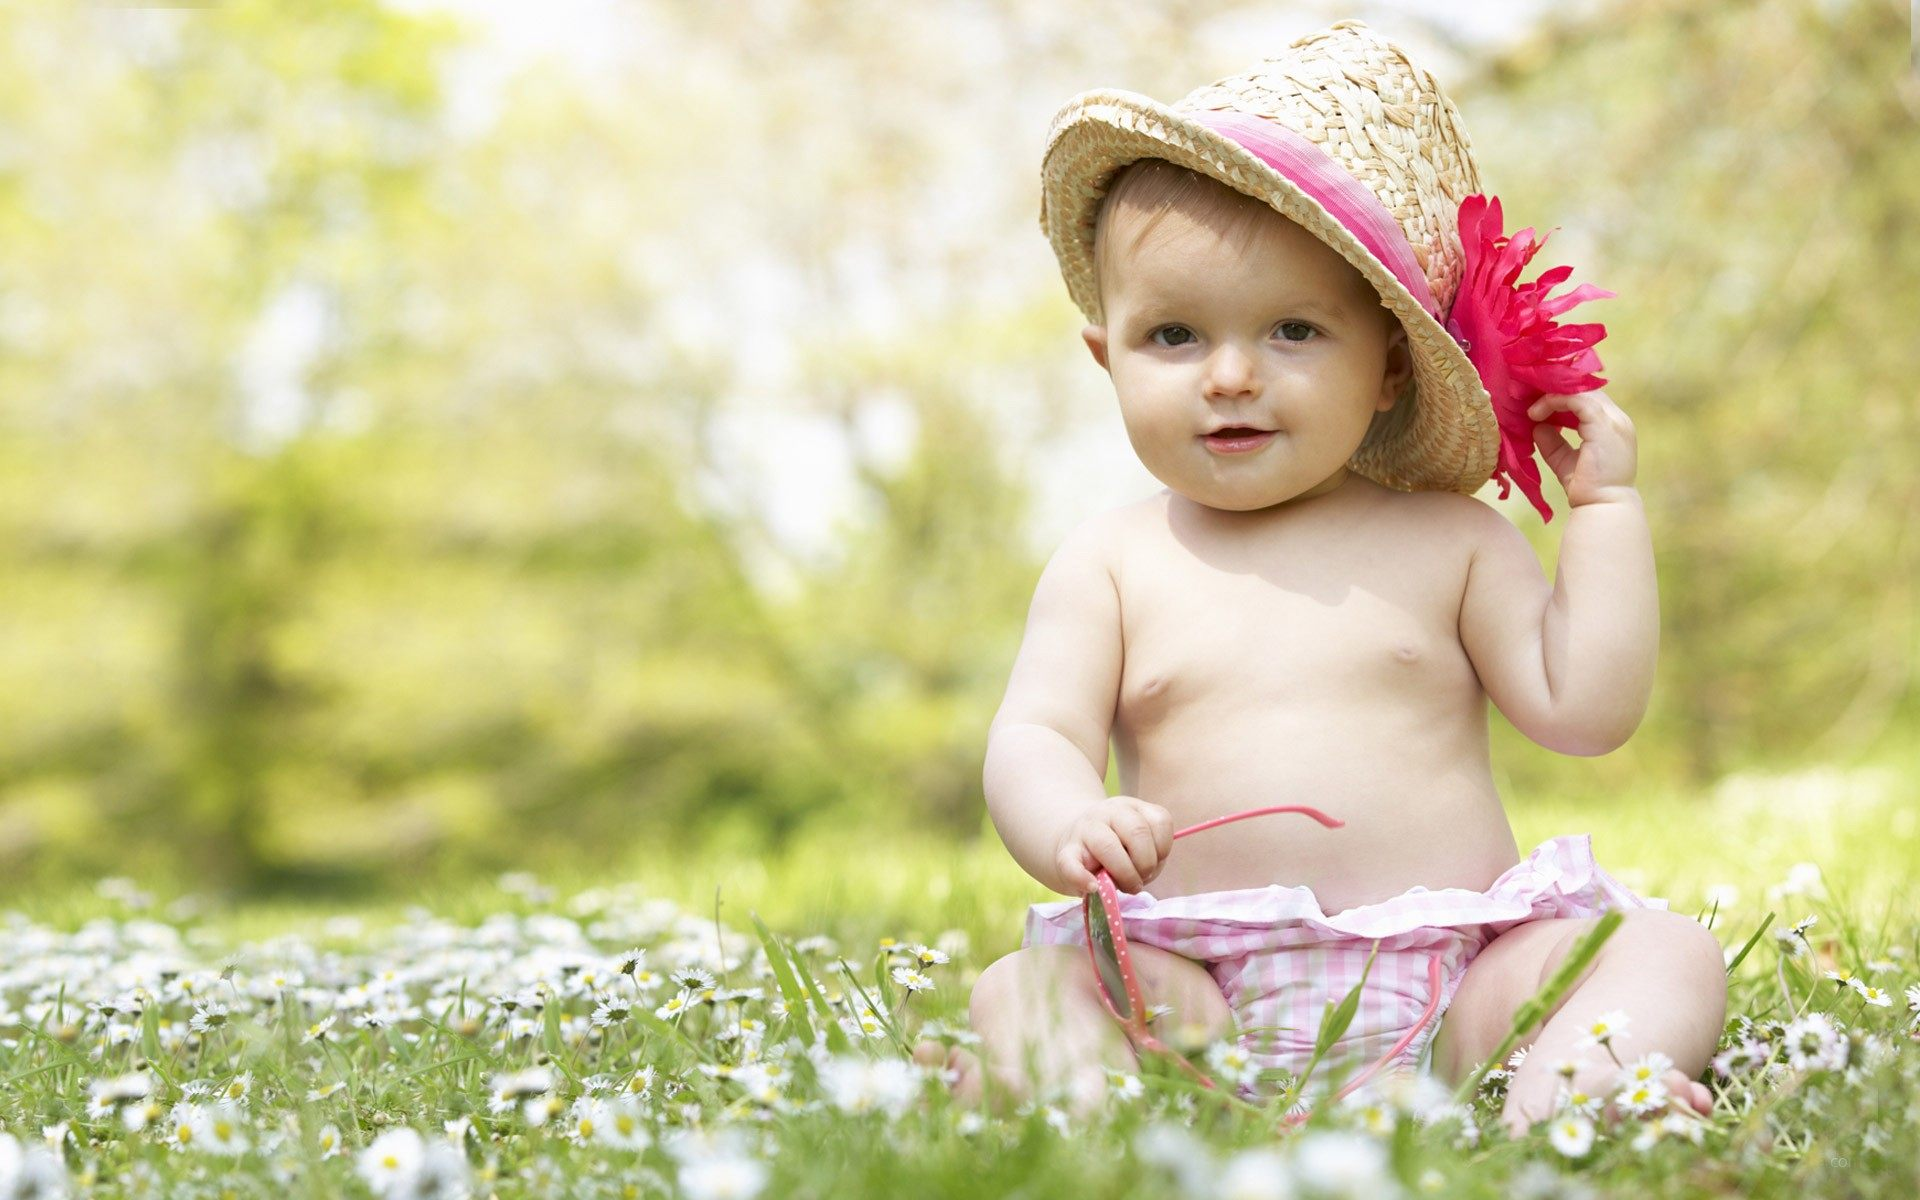 cute baby boy backgrounds free download | wallpaper.wiki